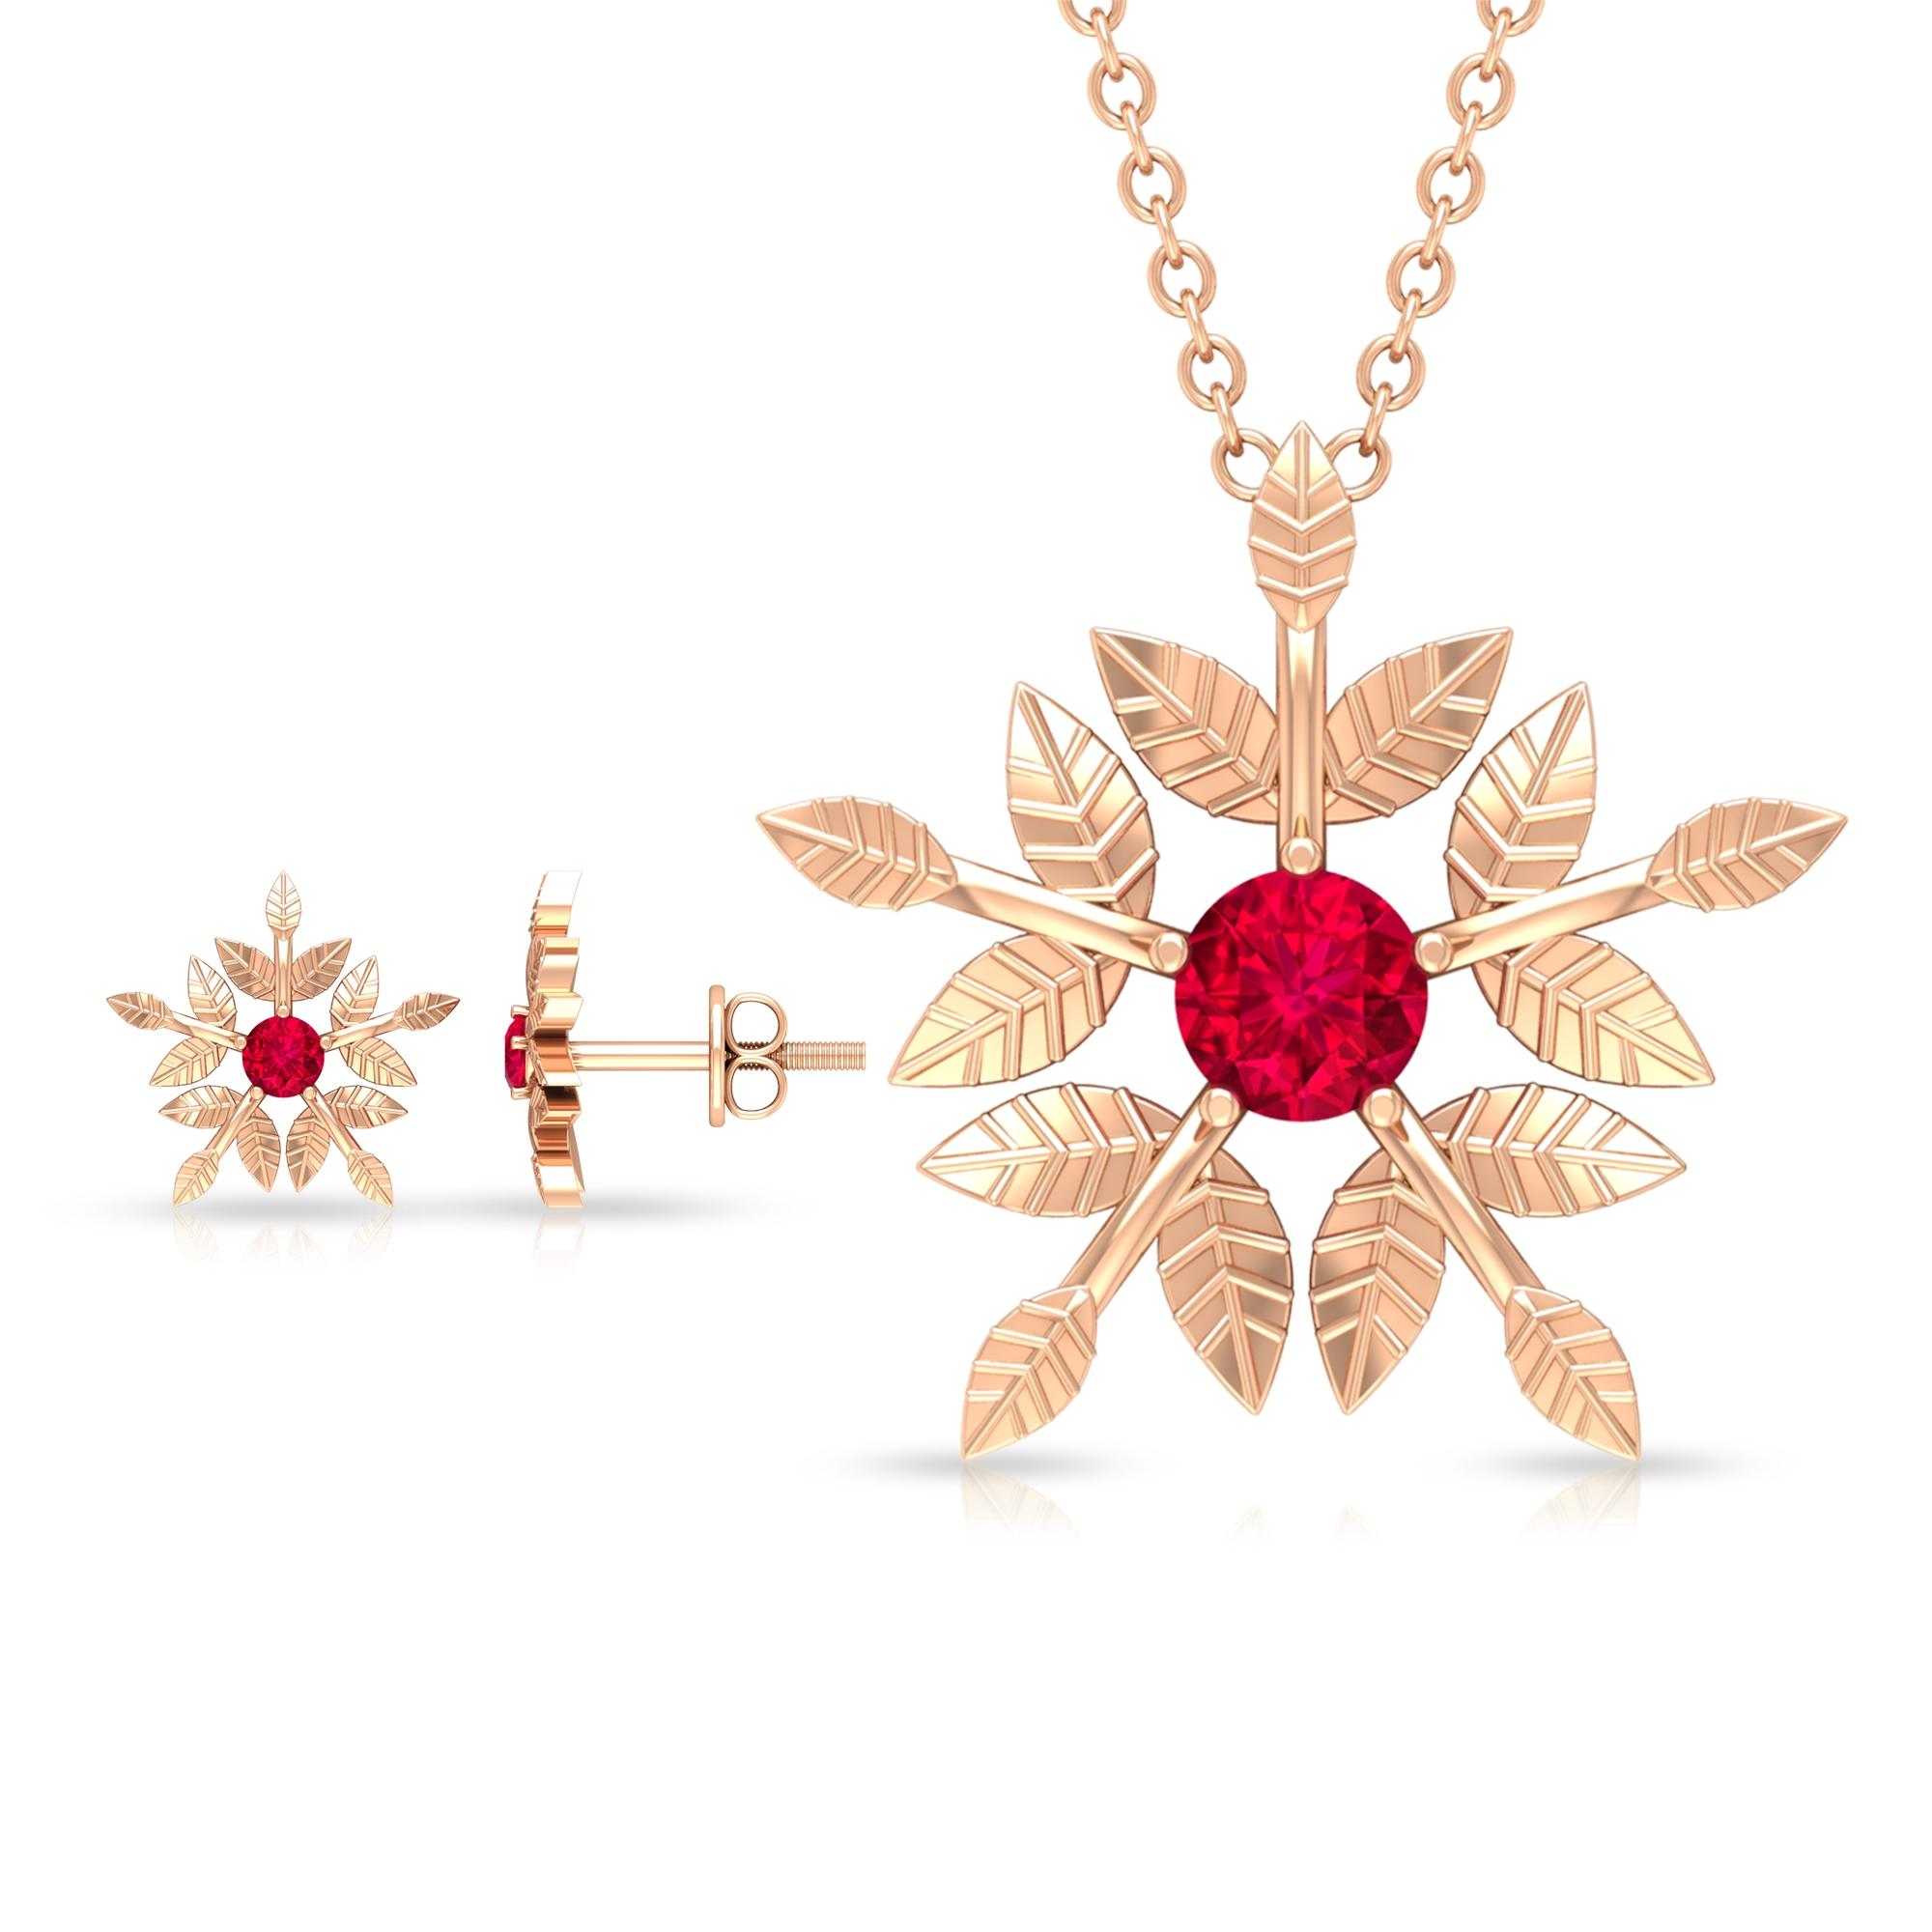 1/2 CT Engraved Gold Floral Ruby Necklace and Earrings Set